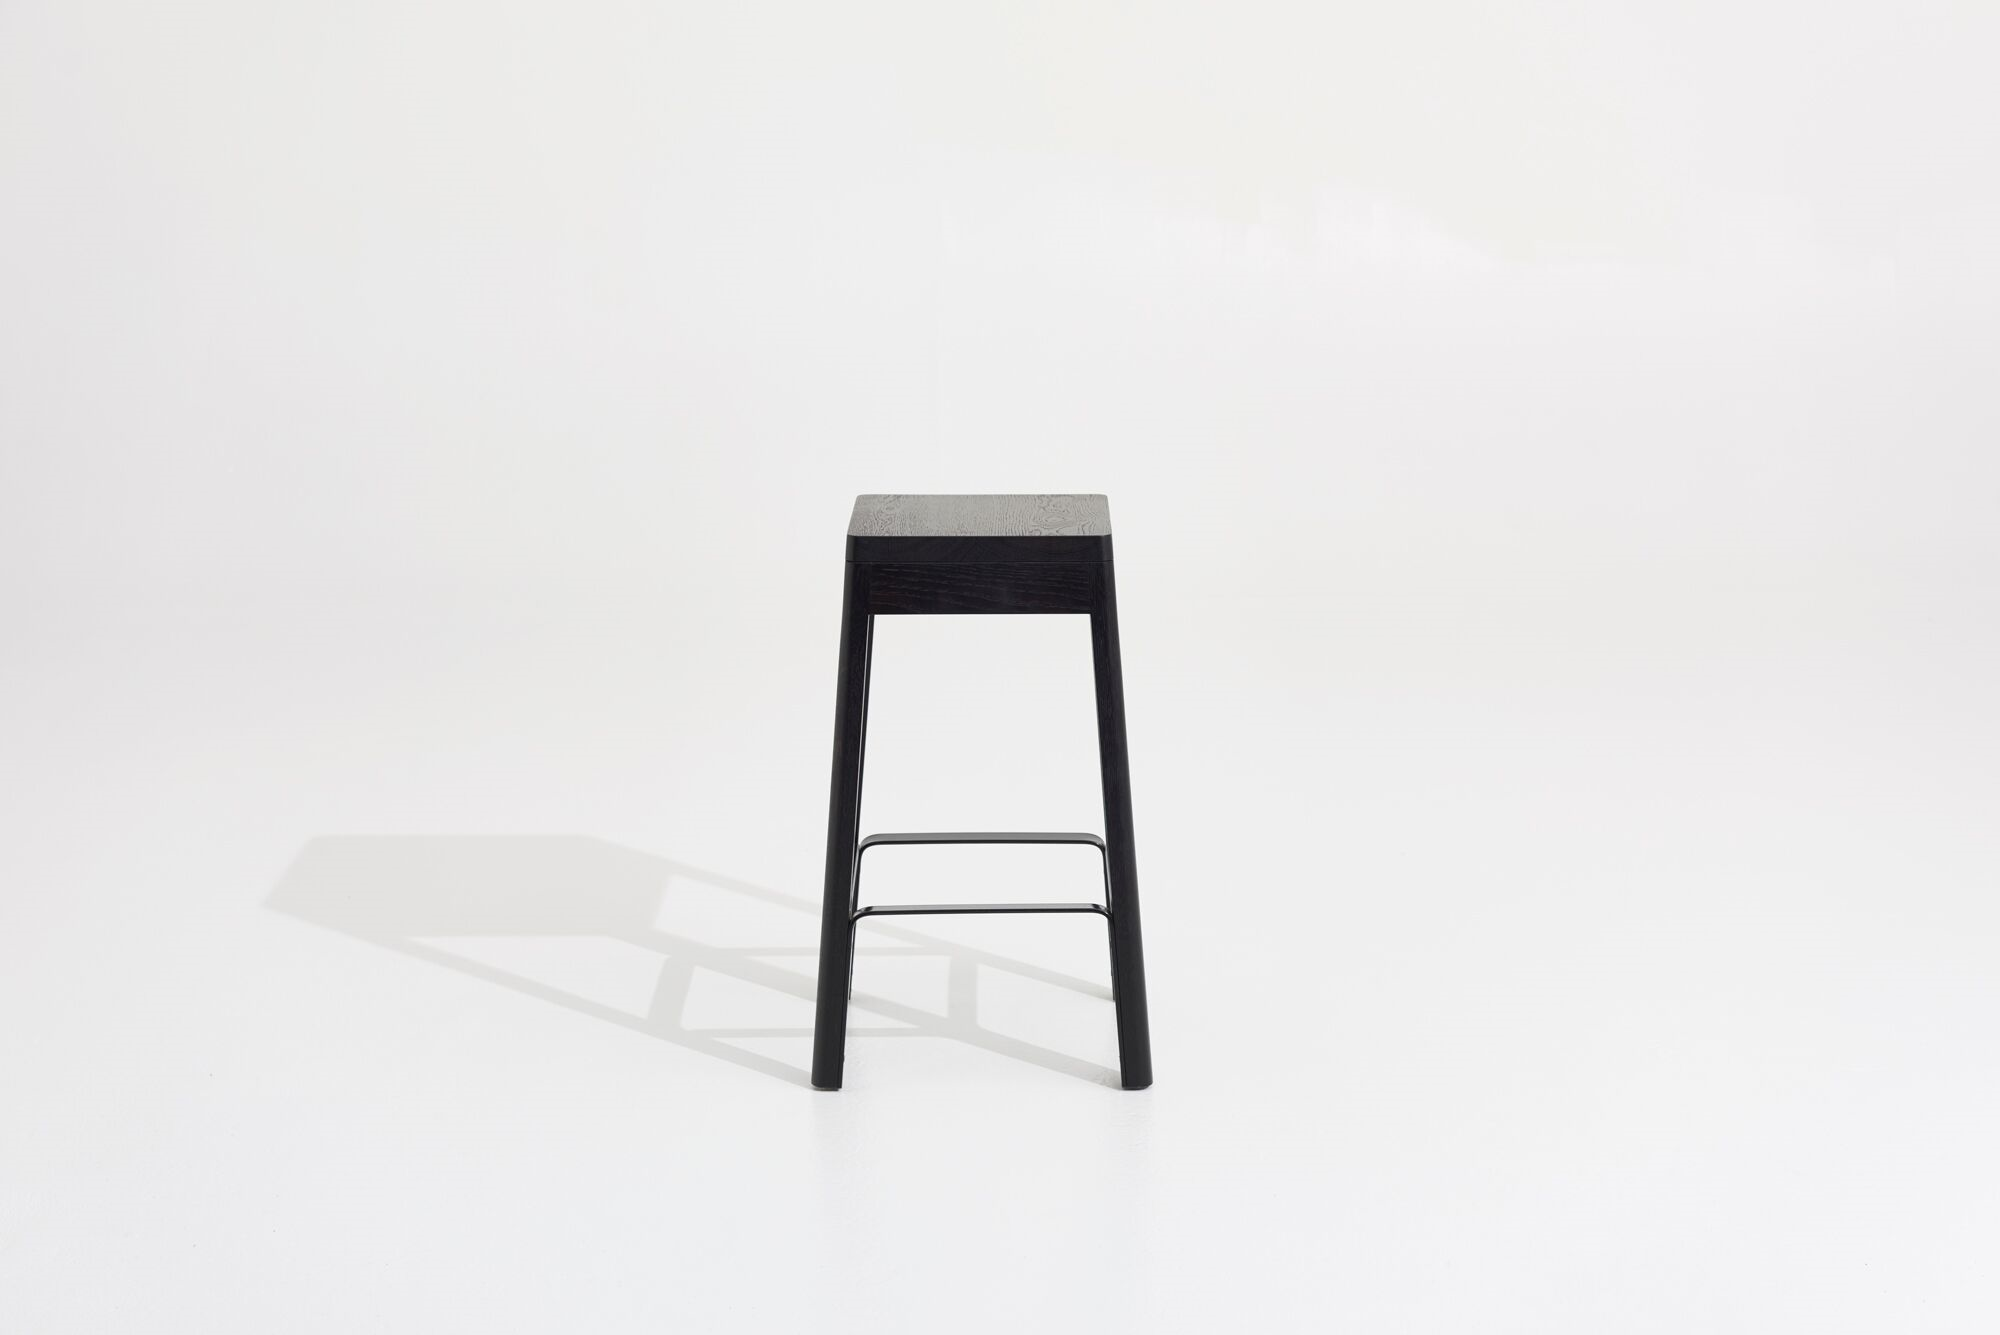 The Cinder Standard, Short and Tall Stool